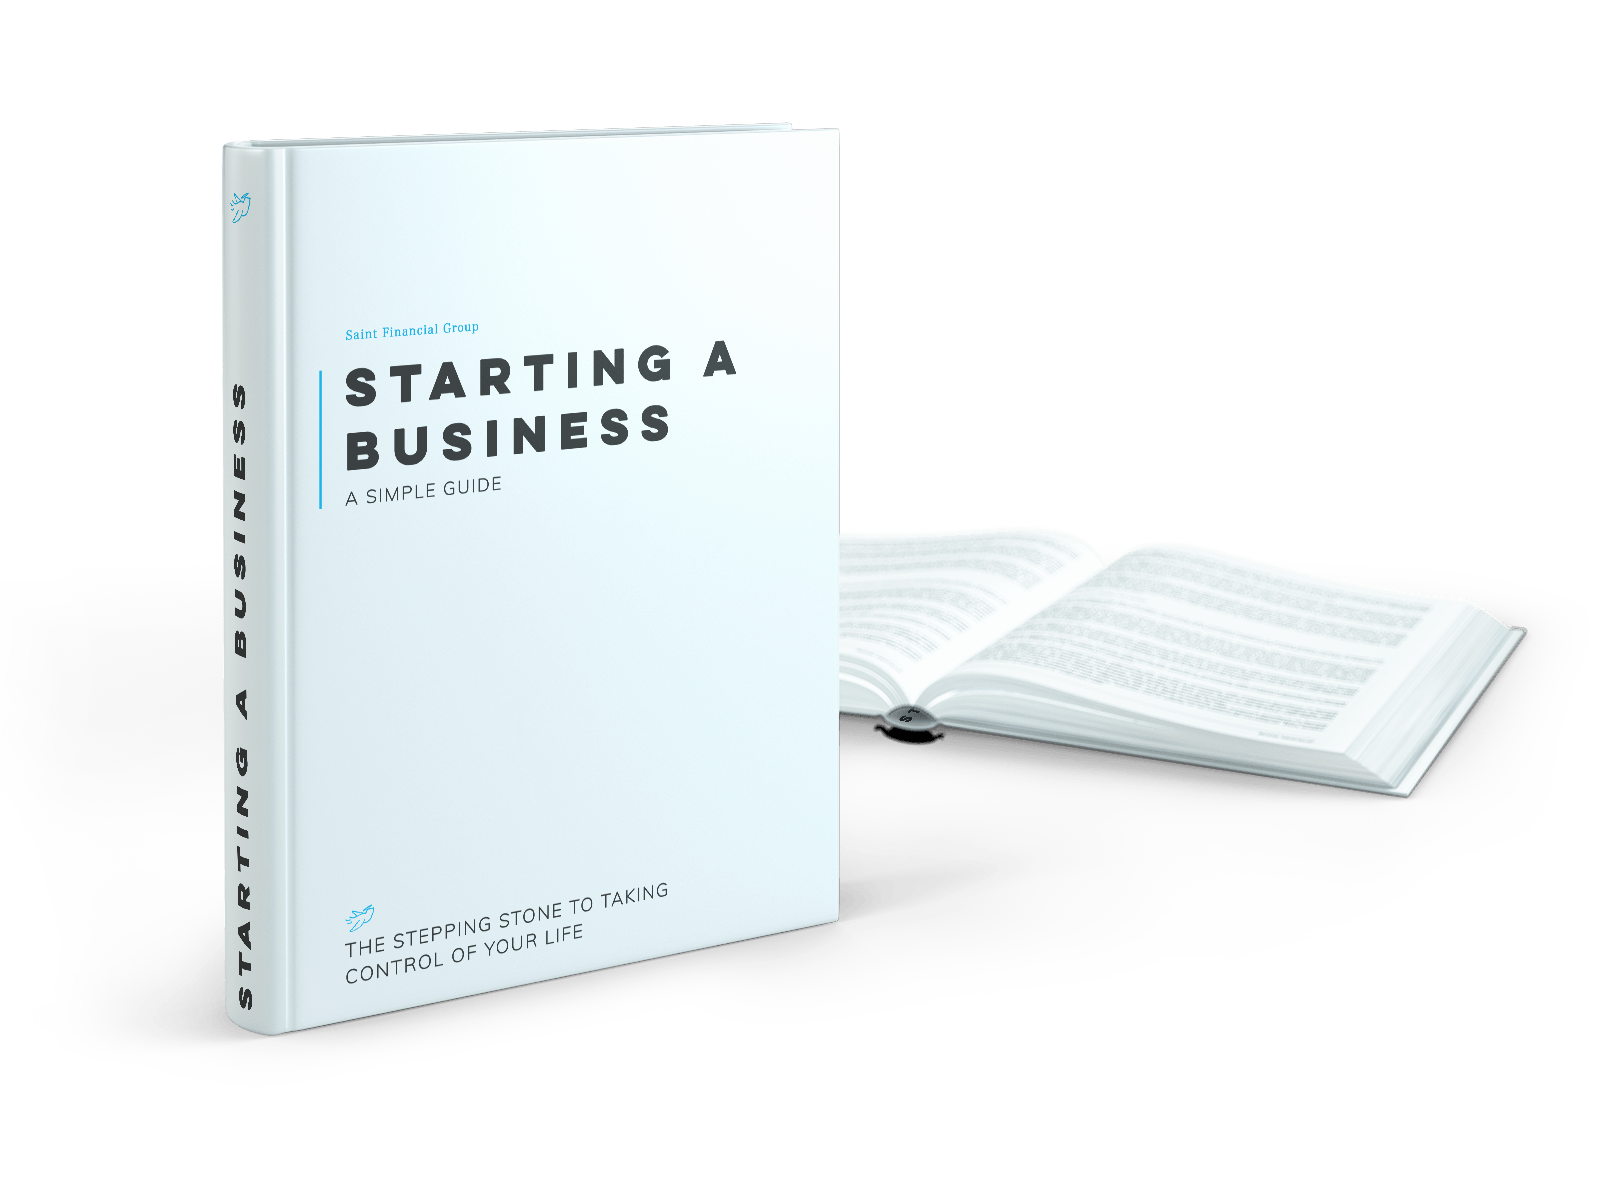 Starting a Business - A Simple Guide